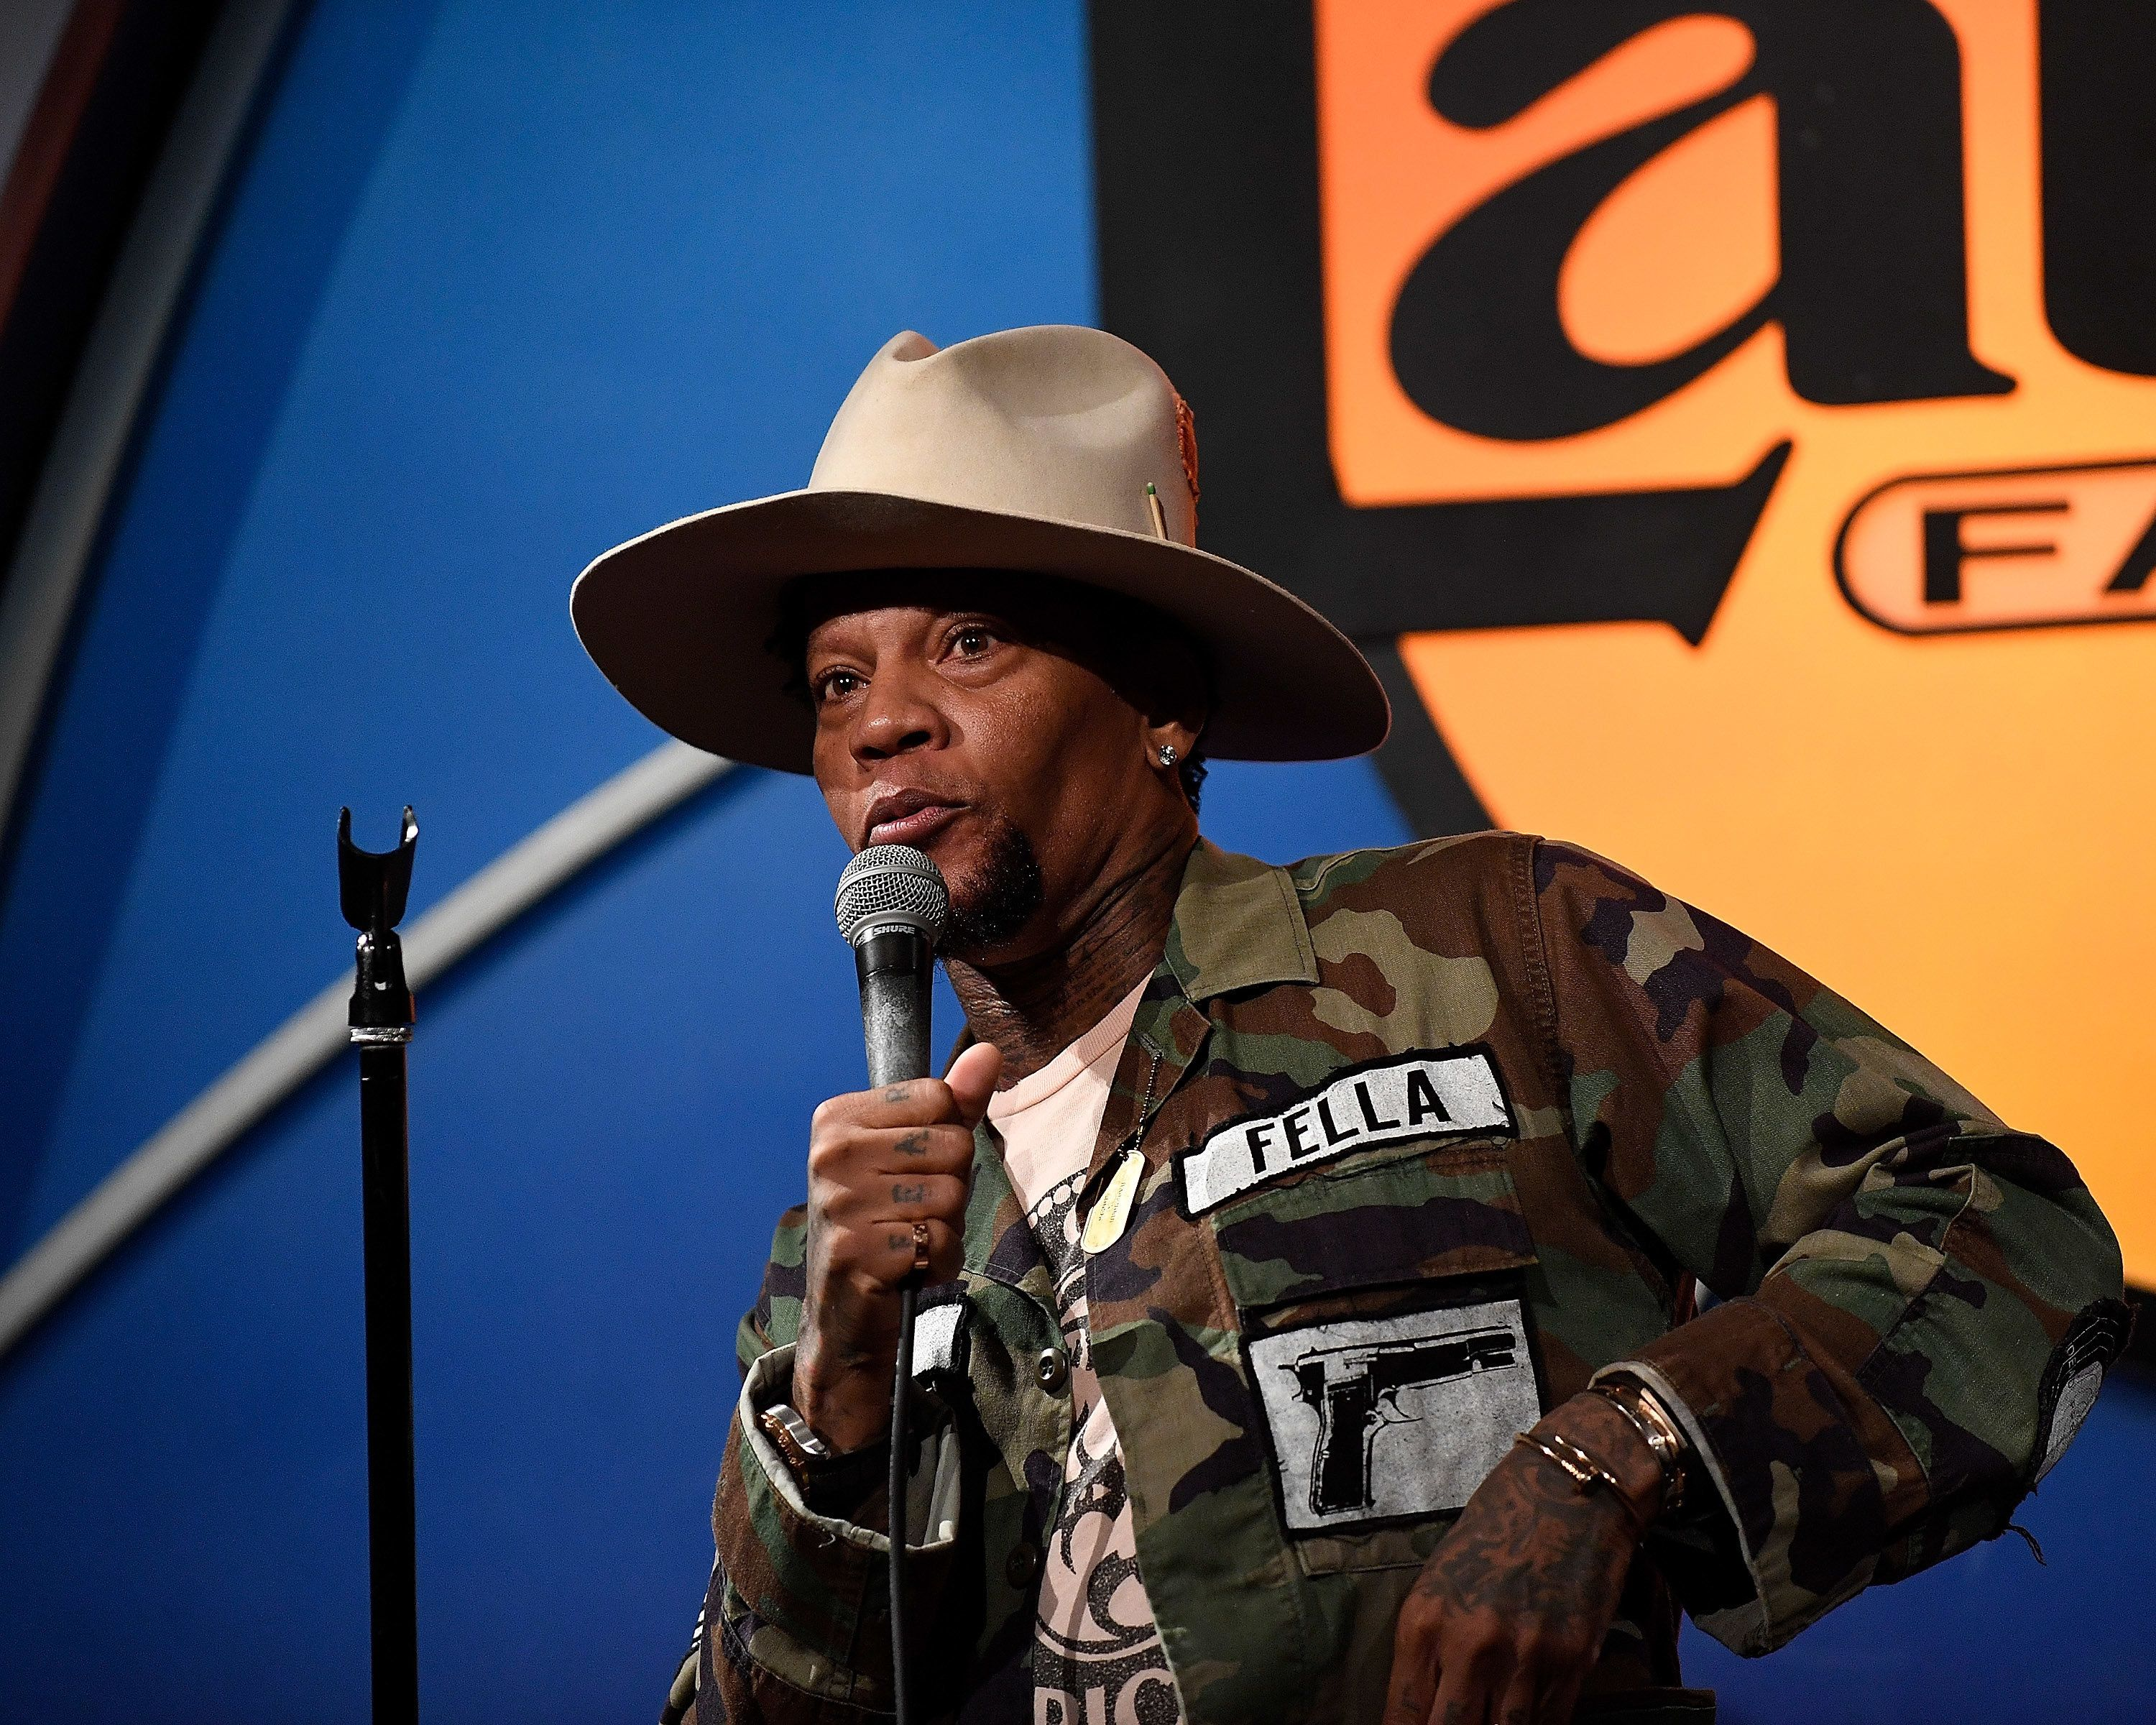 WEST HOLLYWOOD, CA - JUNE 06:  Actor D.L. Hughley performs at the Sarcoma-Oma Foundation Comedy Benefit at The Laugh Factory on June 6, 2018 in West Hollywood, California.  (Photo by Michael S. Schwartz/Getty Images)